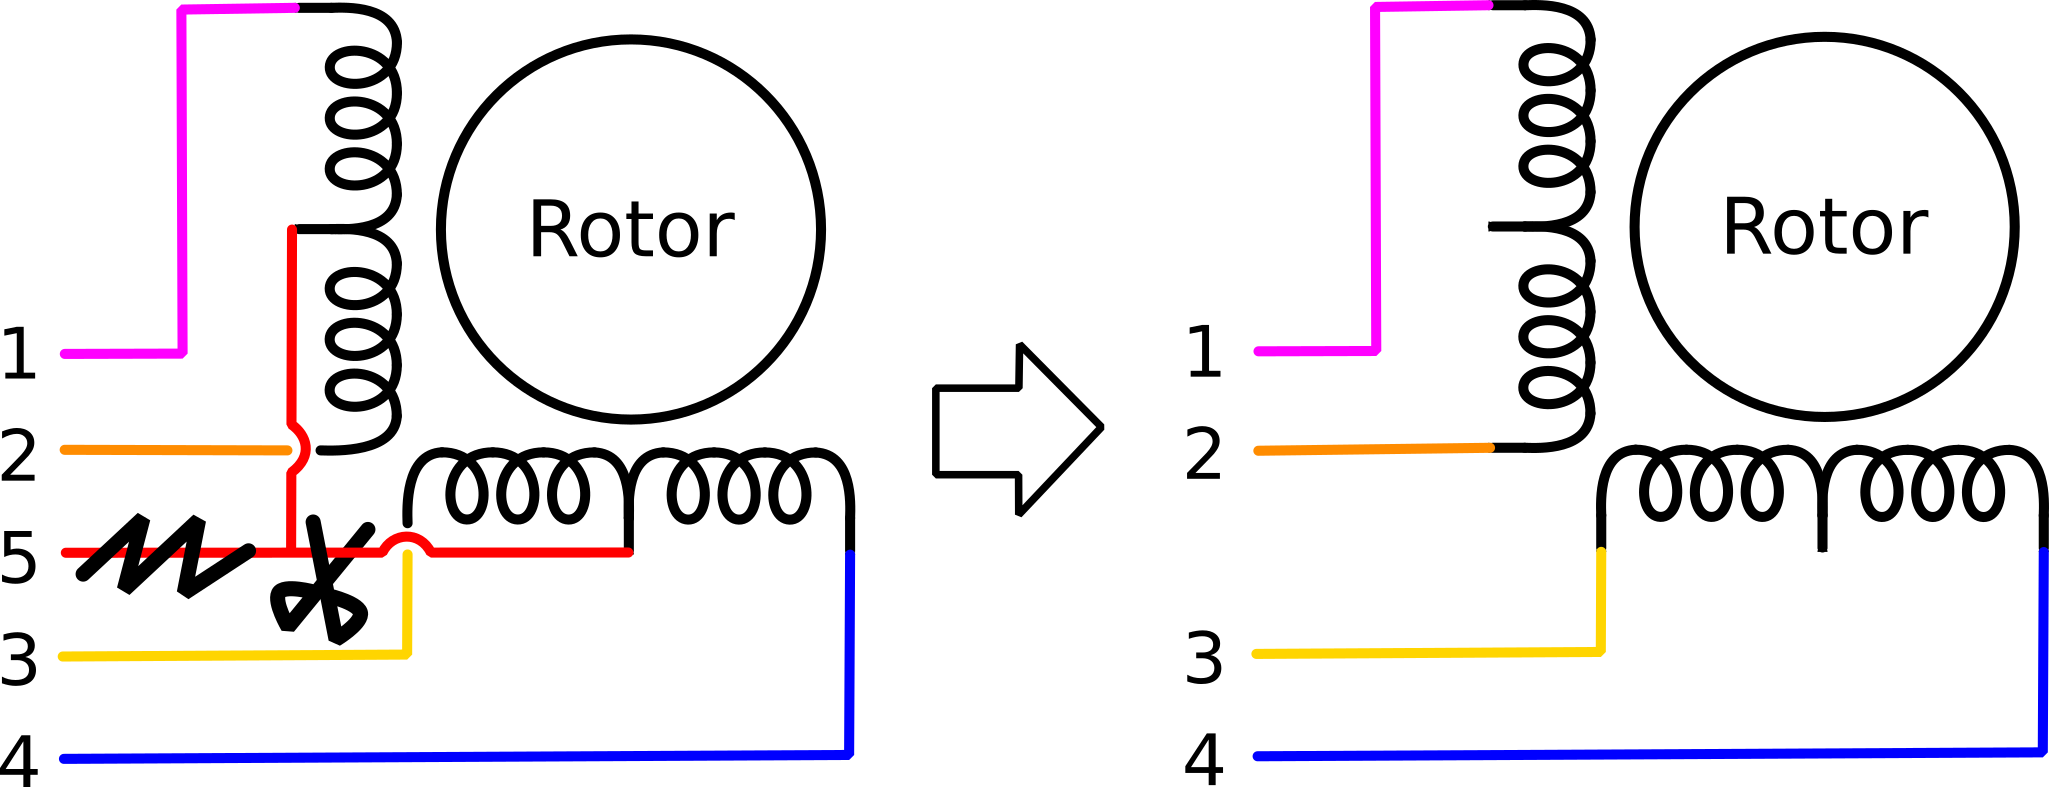 Conversion of a unipolar stepper motor to a bipolar one